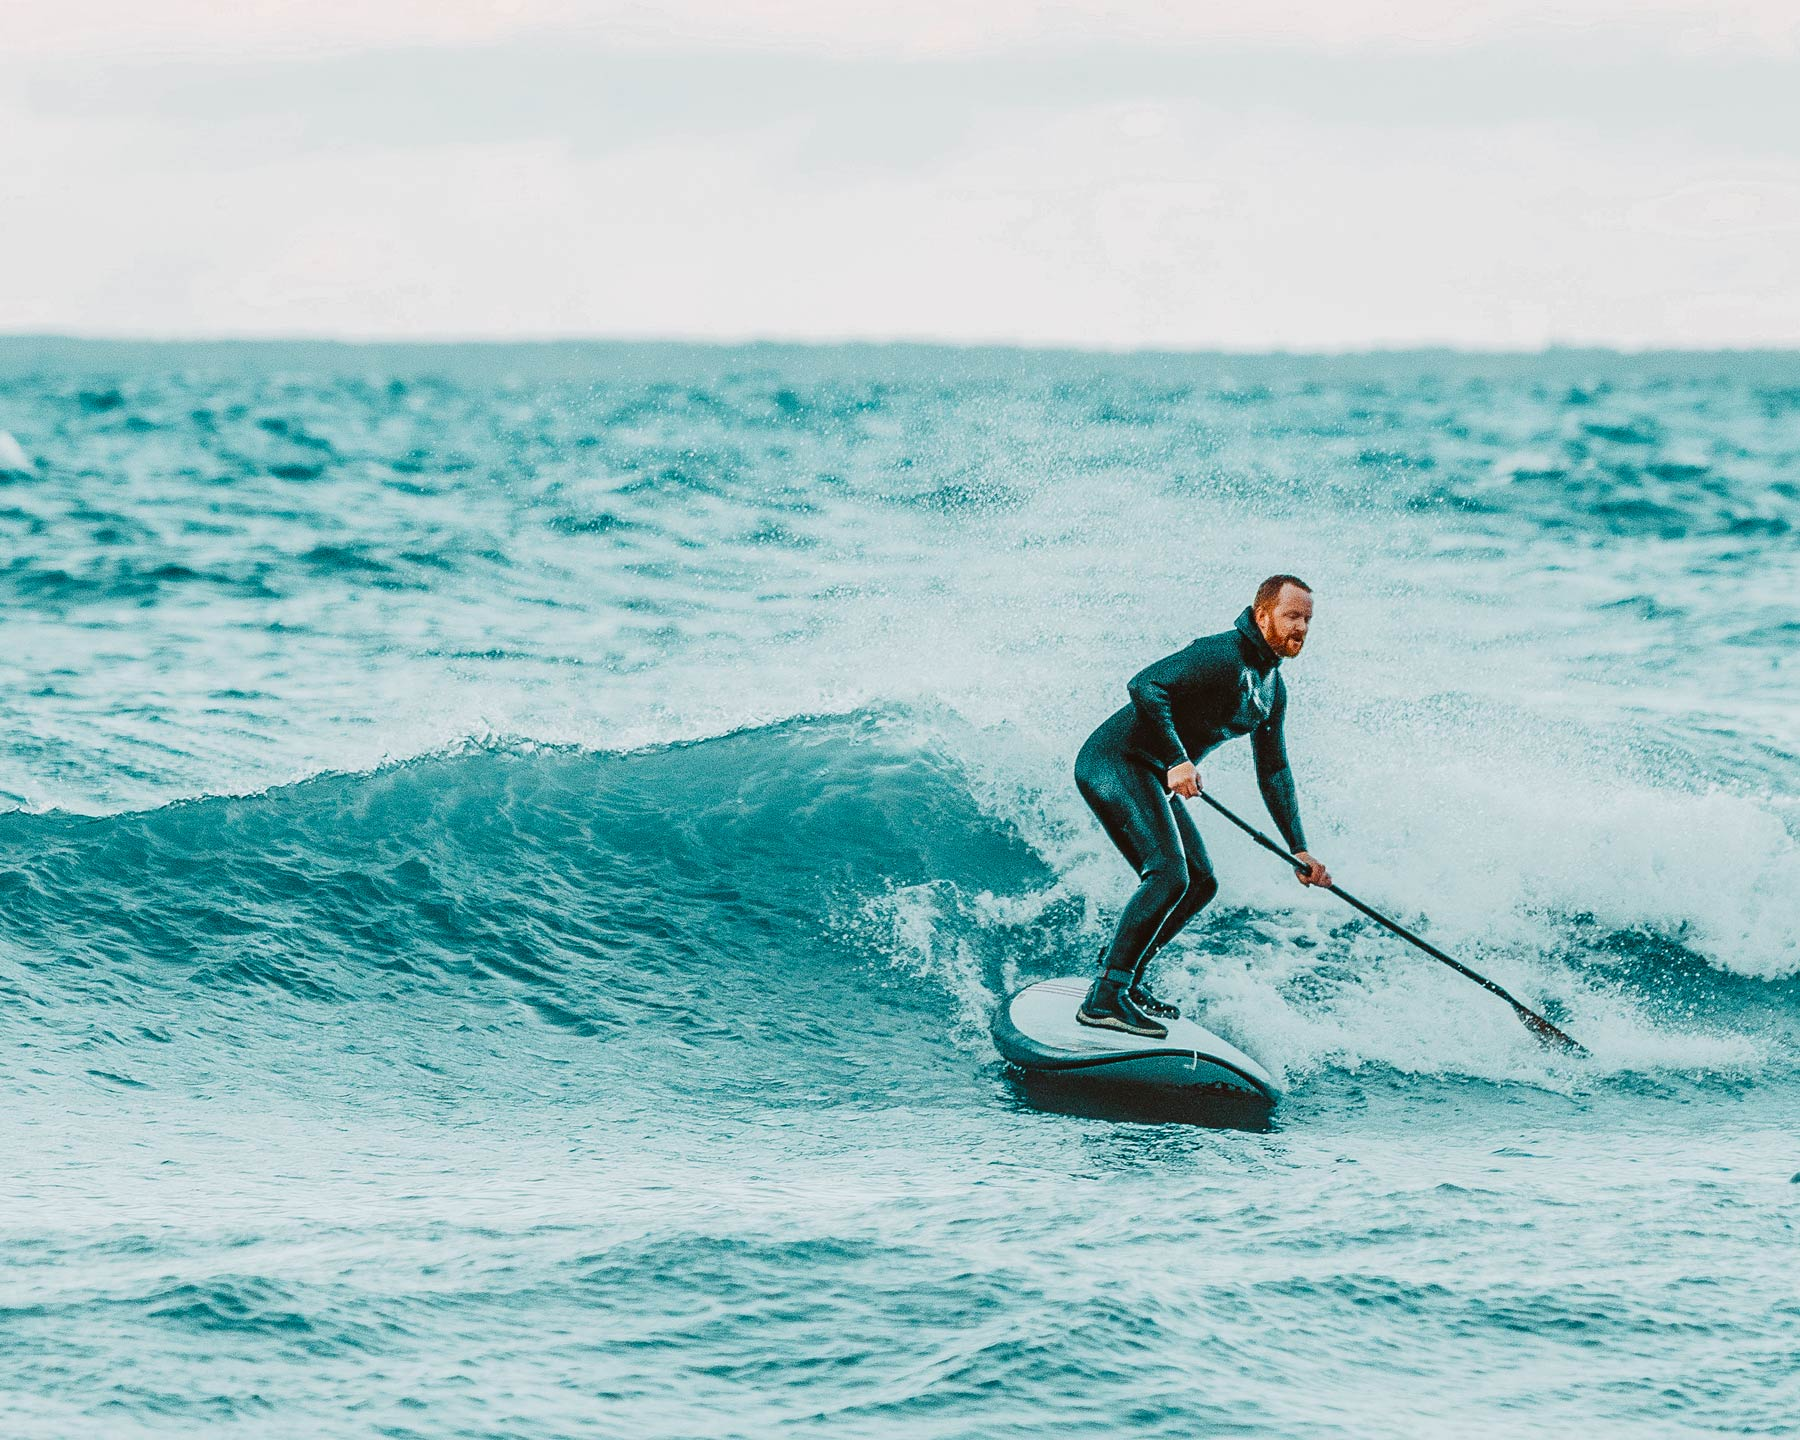 SUP Surfer Collingwood. Photo by Jenna Albany.